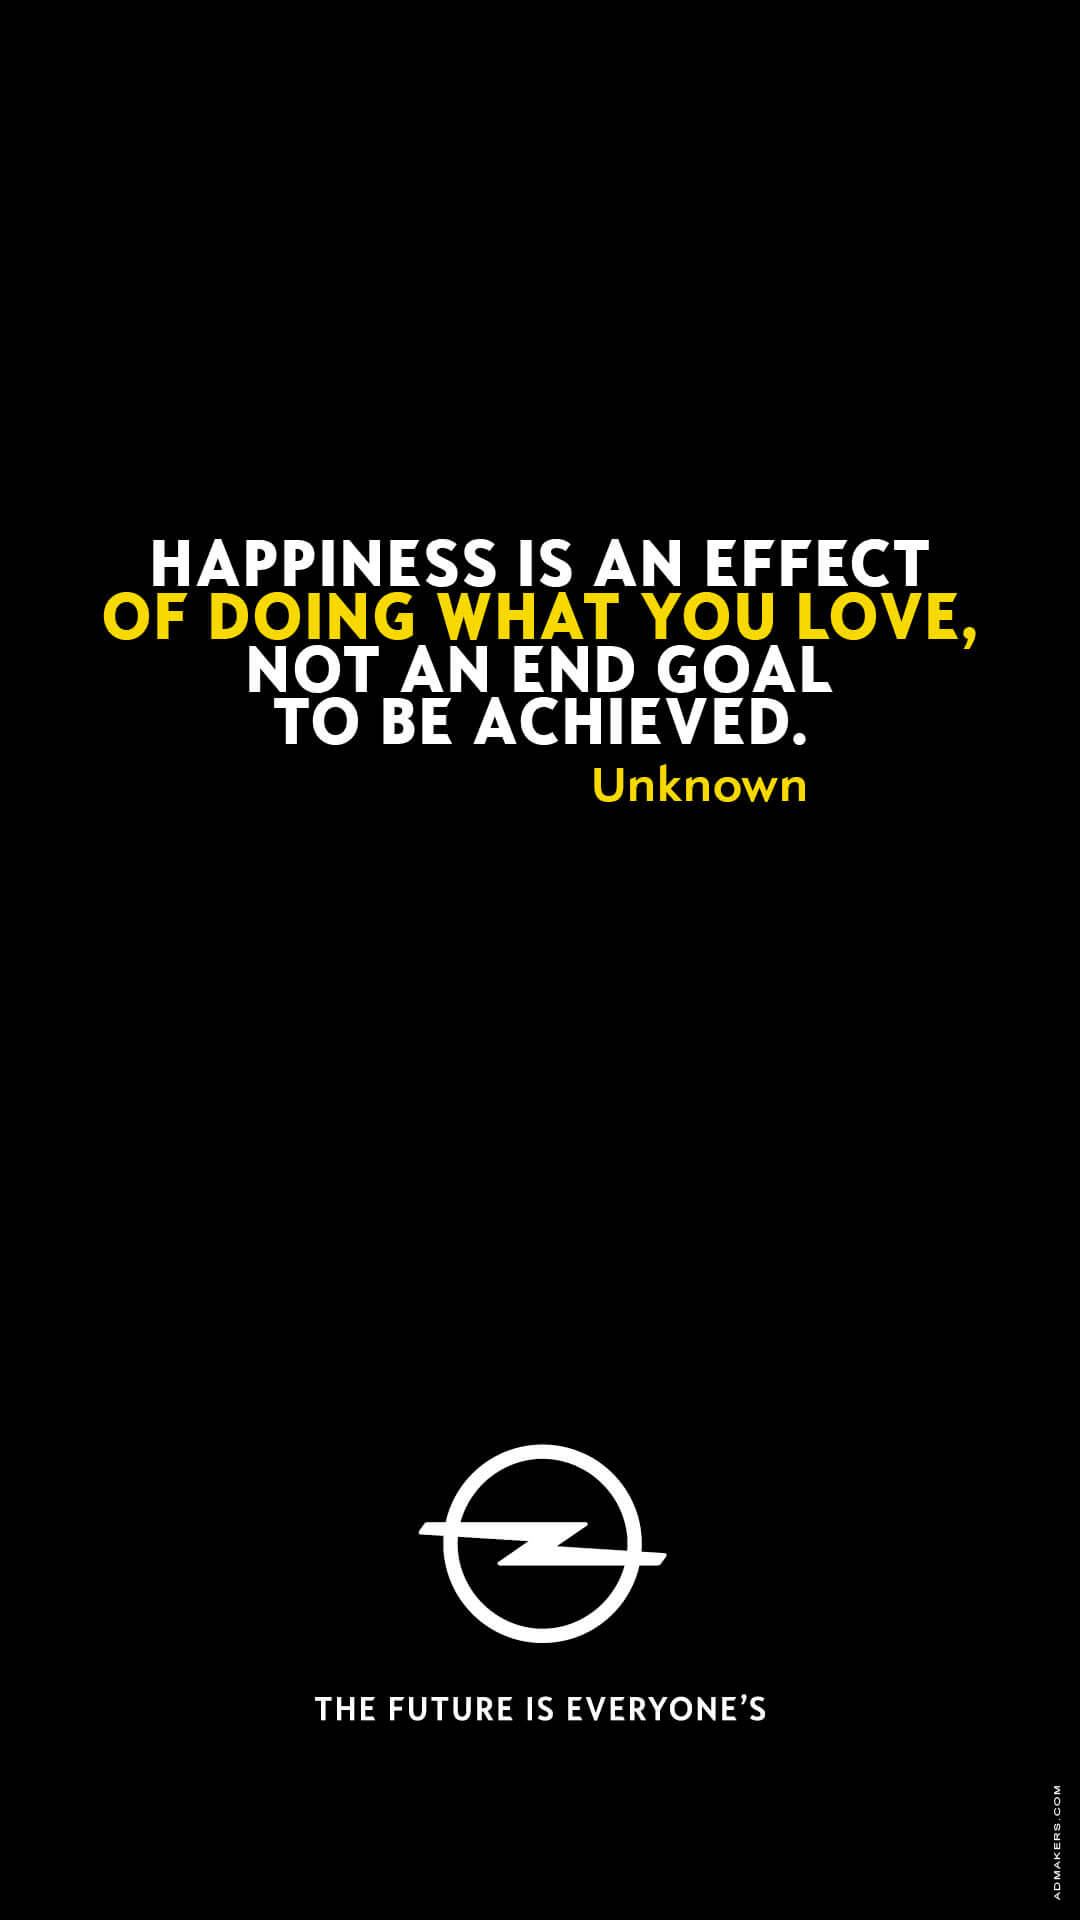 Happiness is an effect of doing what you love, not an end goal to be achieved.